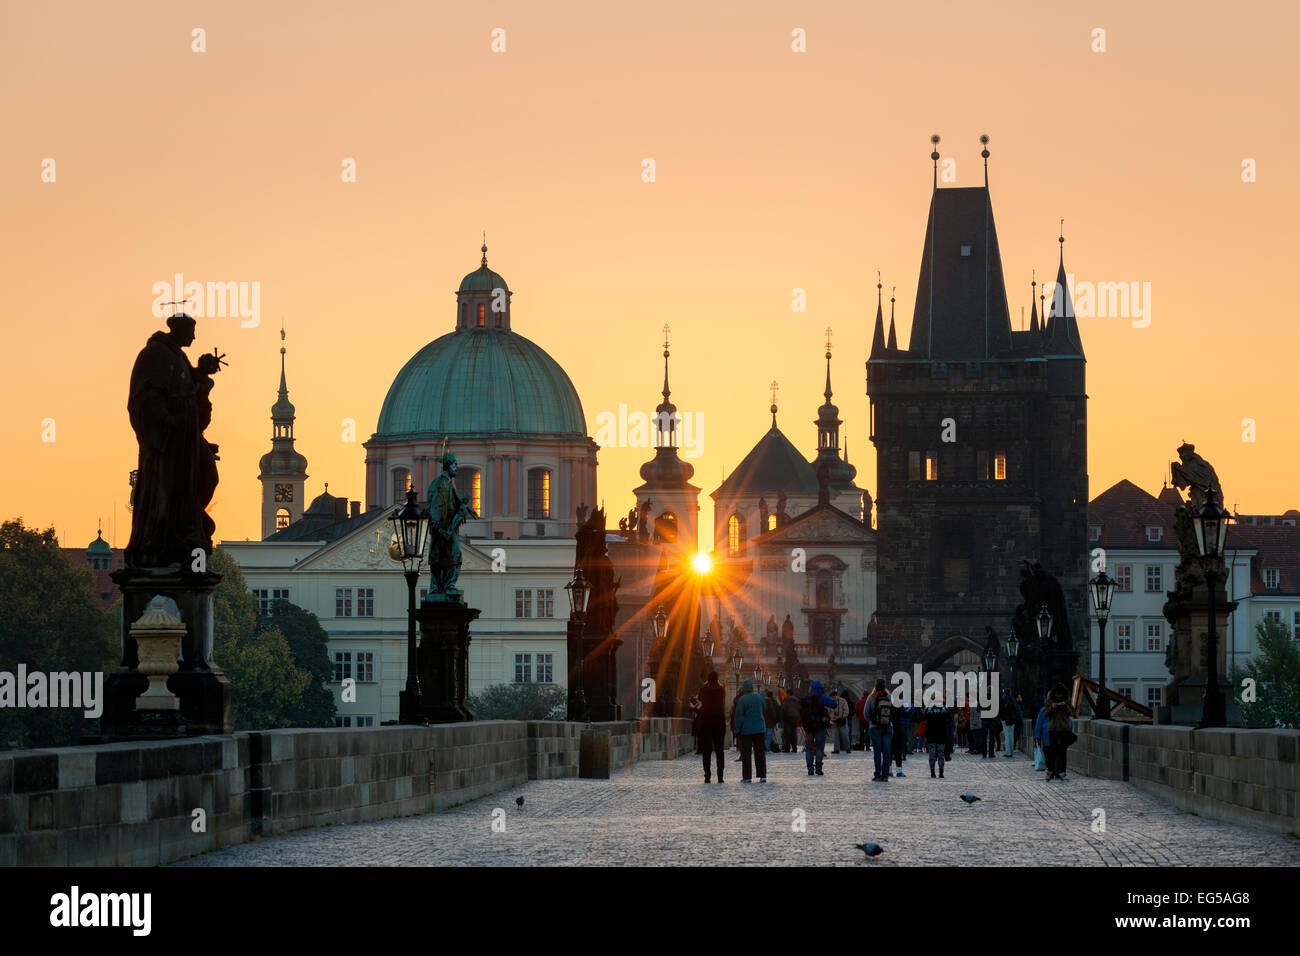 Praga, Charles Bridge a Sunrise Immagini Stock